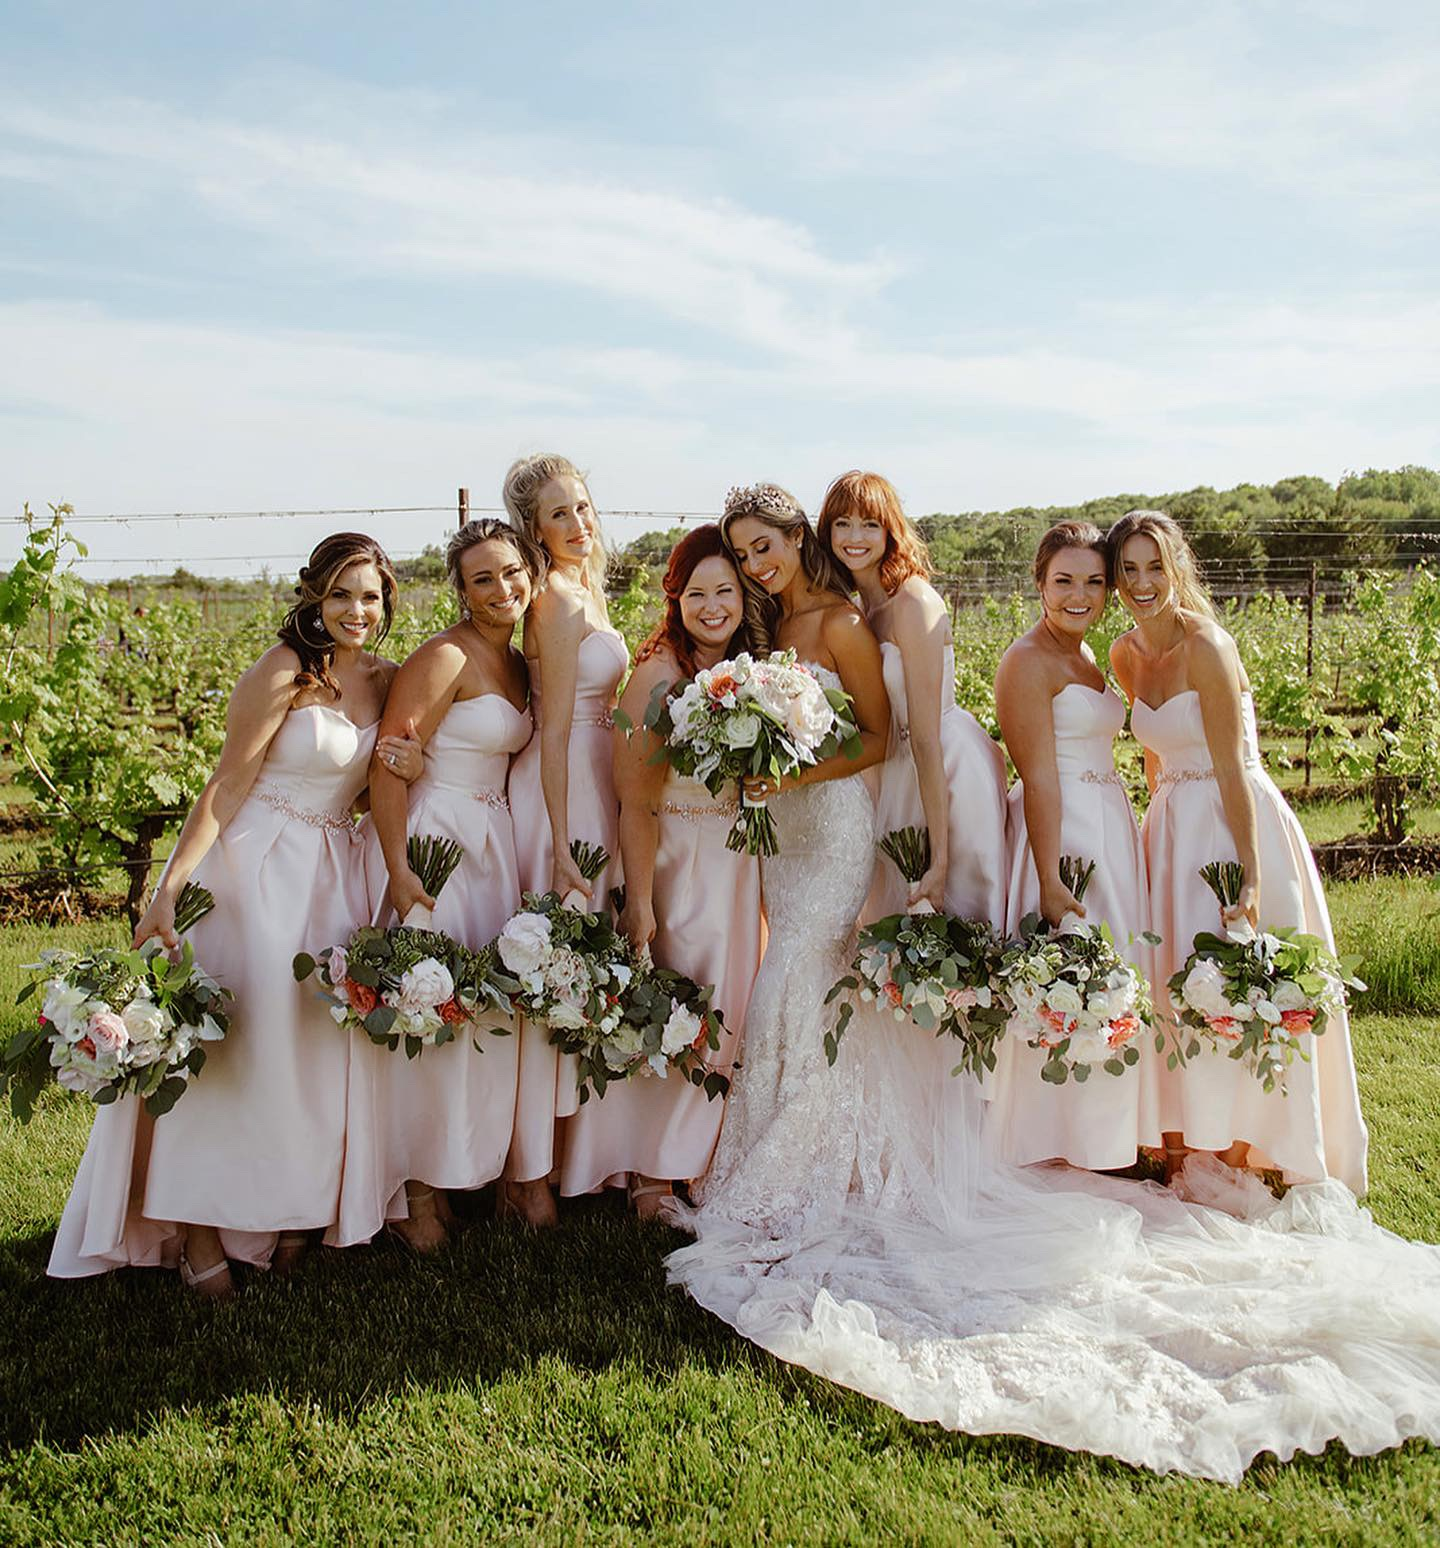 bride and wedding party.jpeg